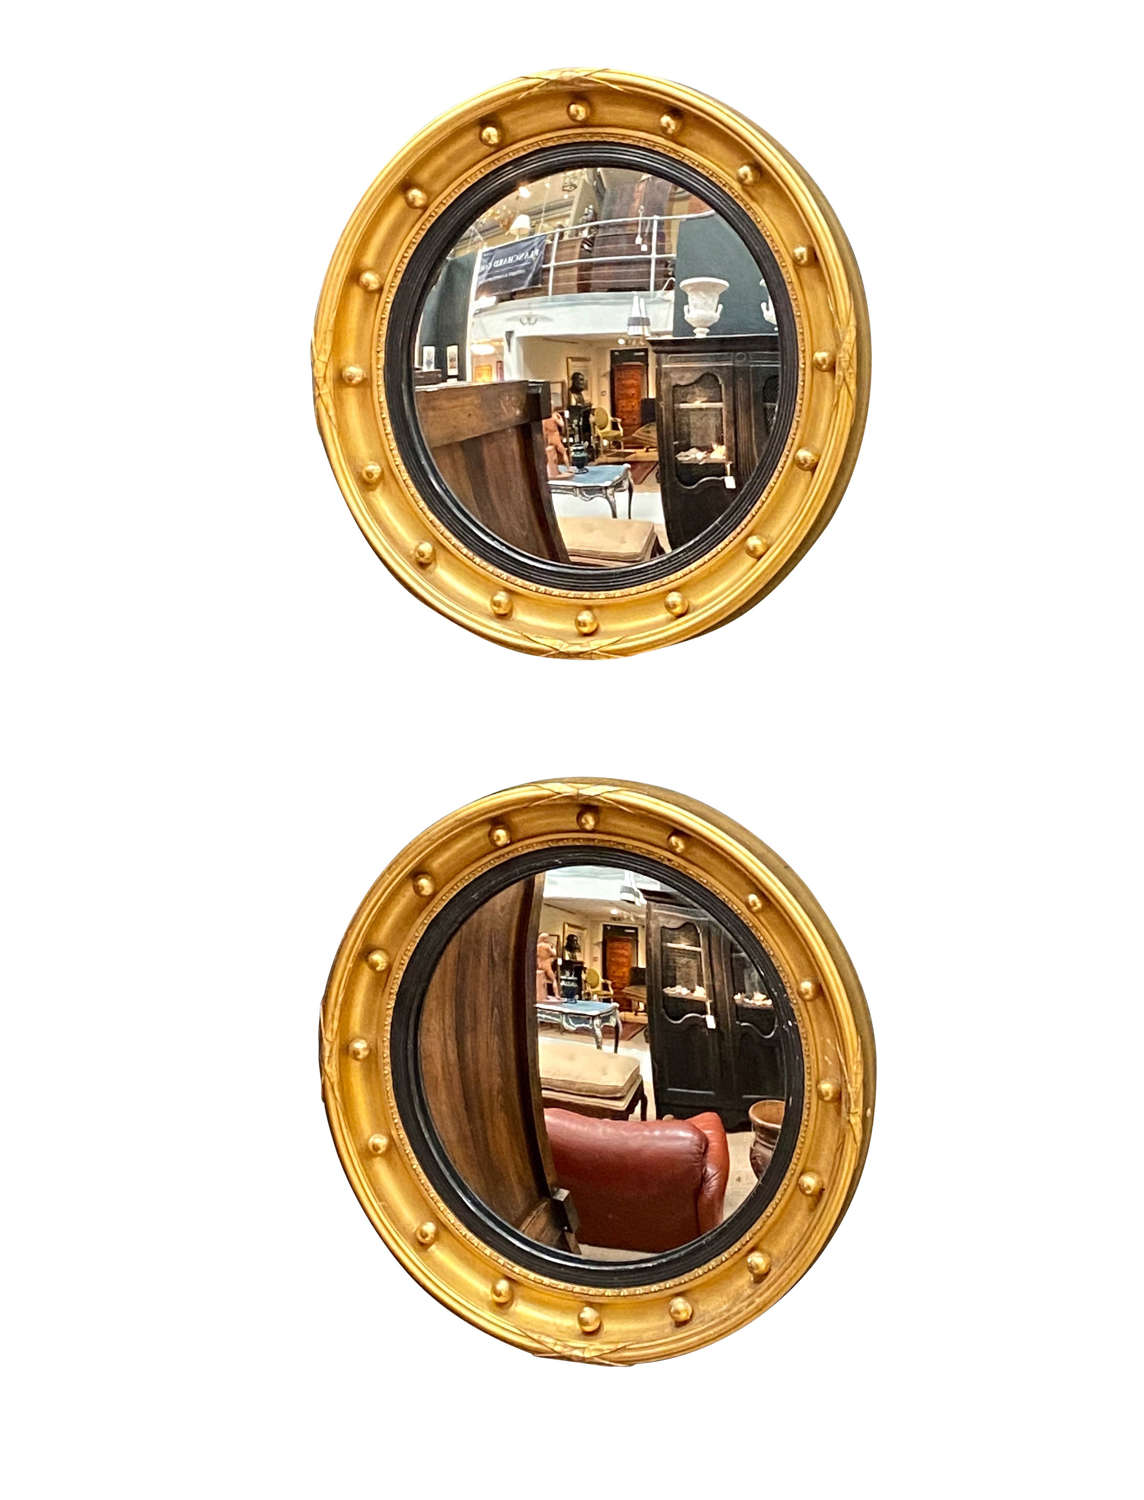 A Pair of Convex Mirrors